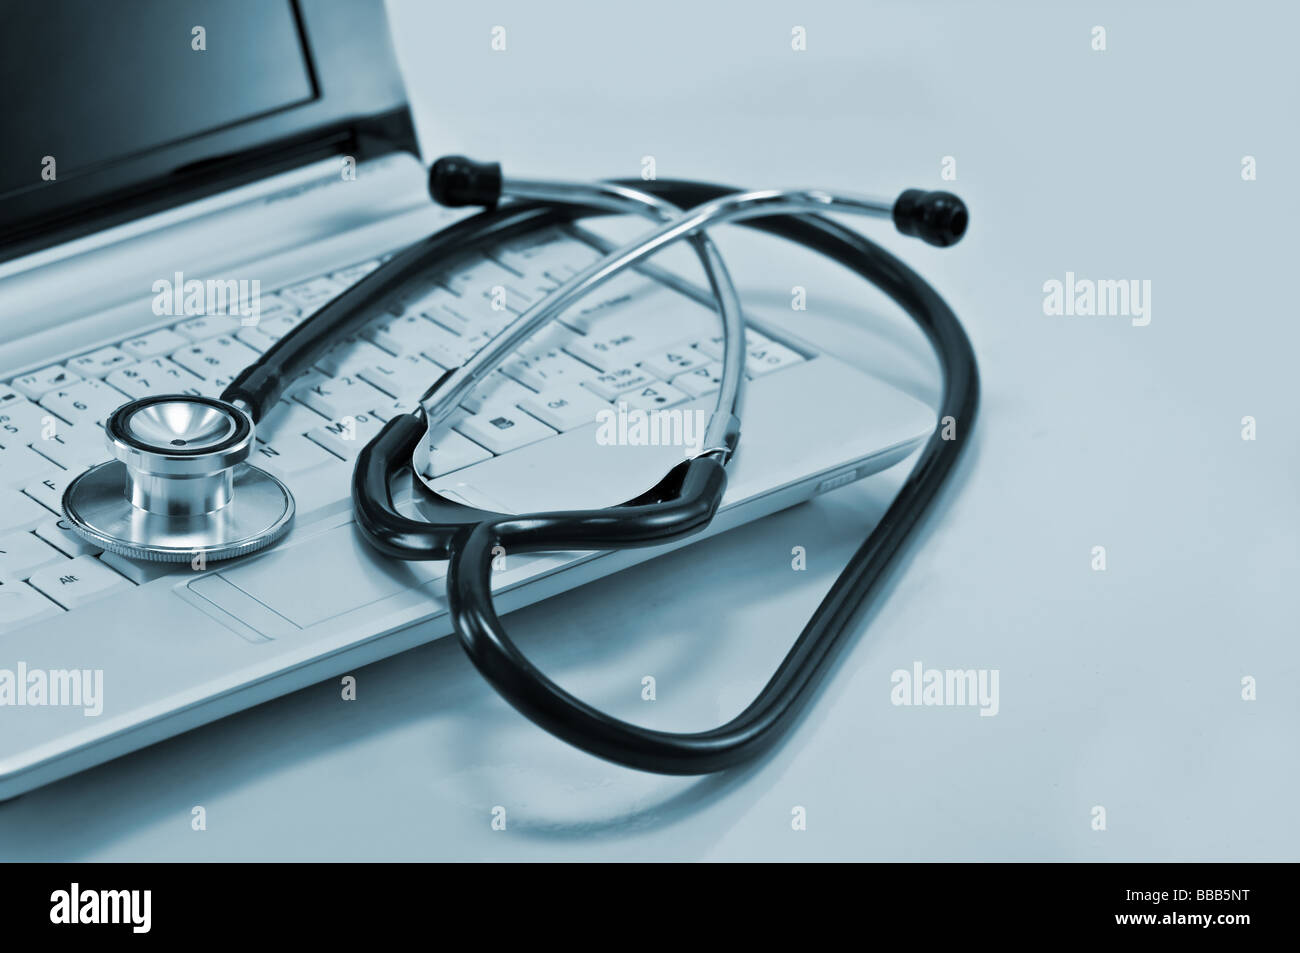 computer and stethoscope - Stock Image